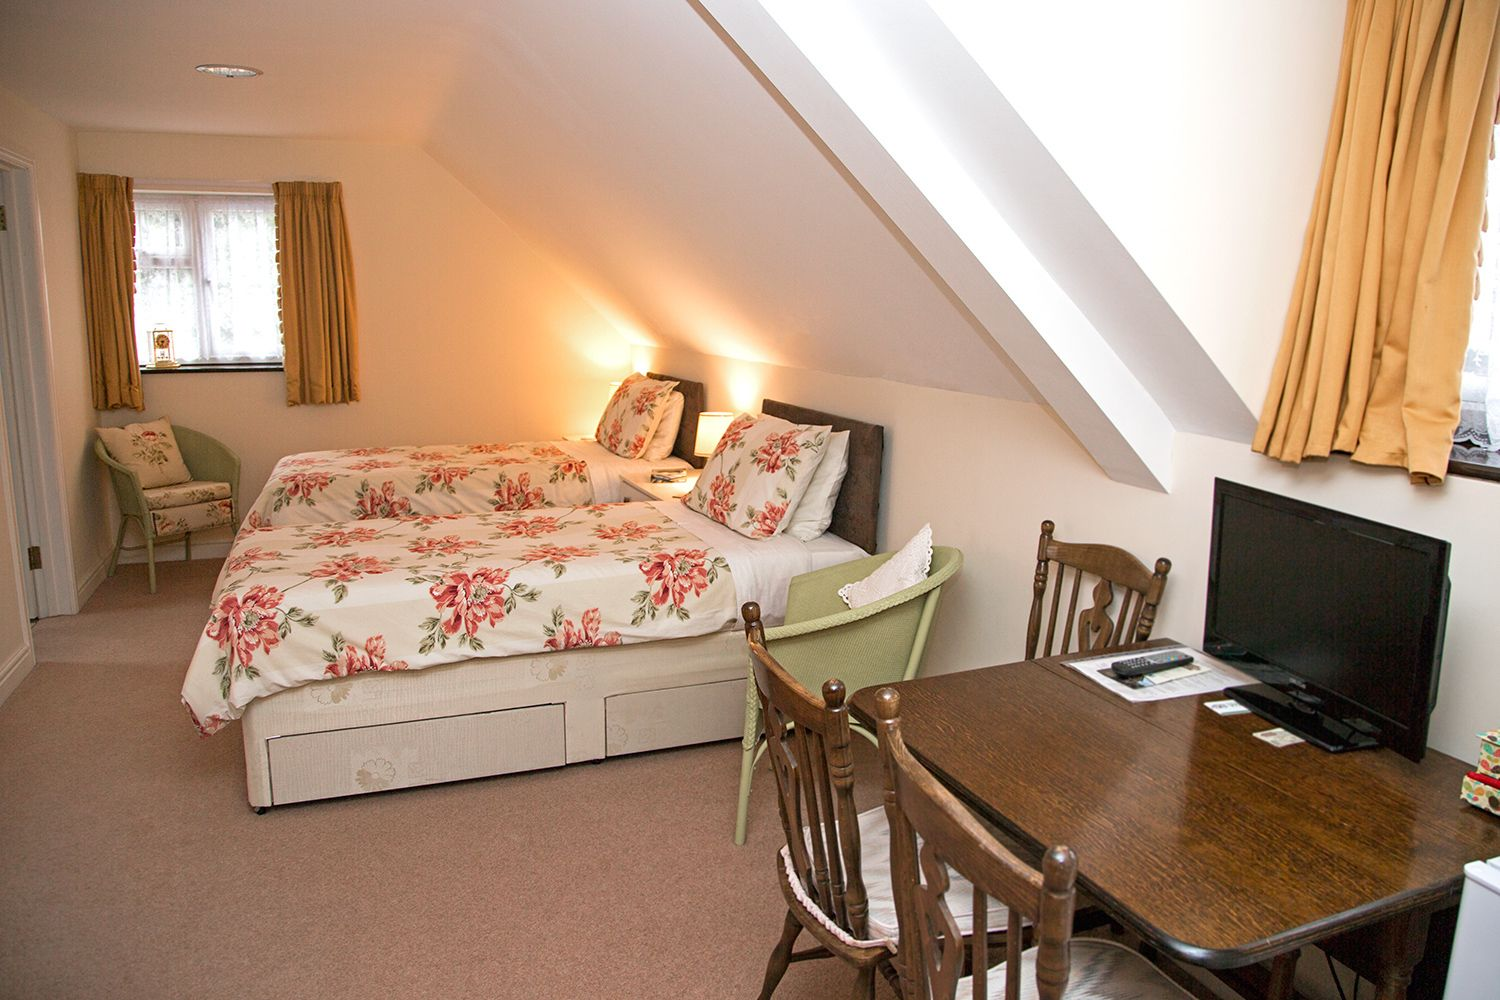 Single beds in The Beeching B&B Hathern